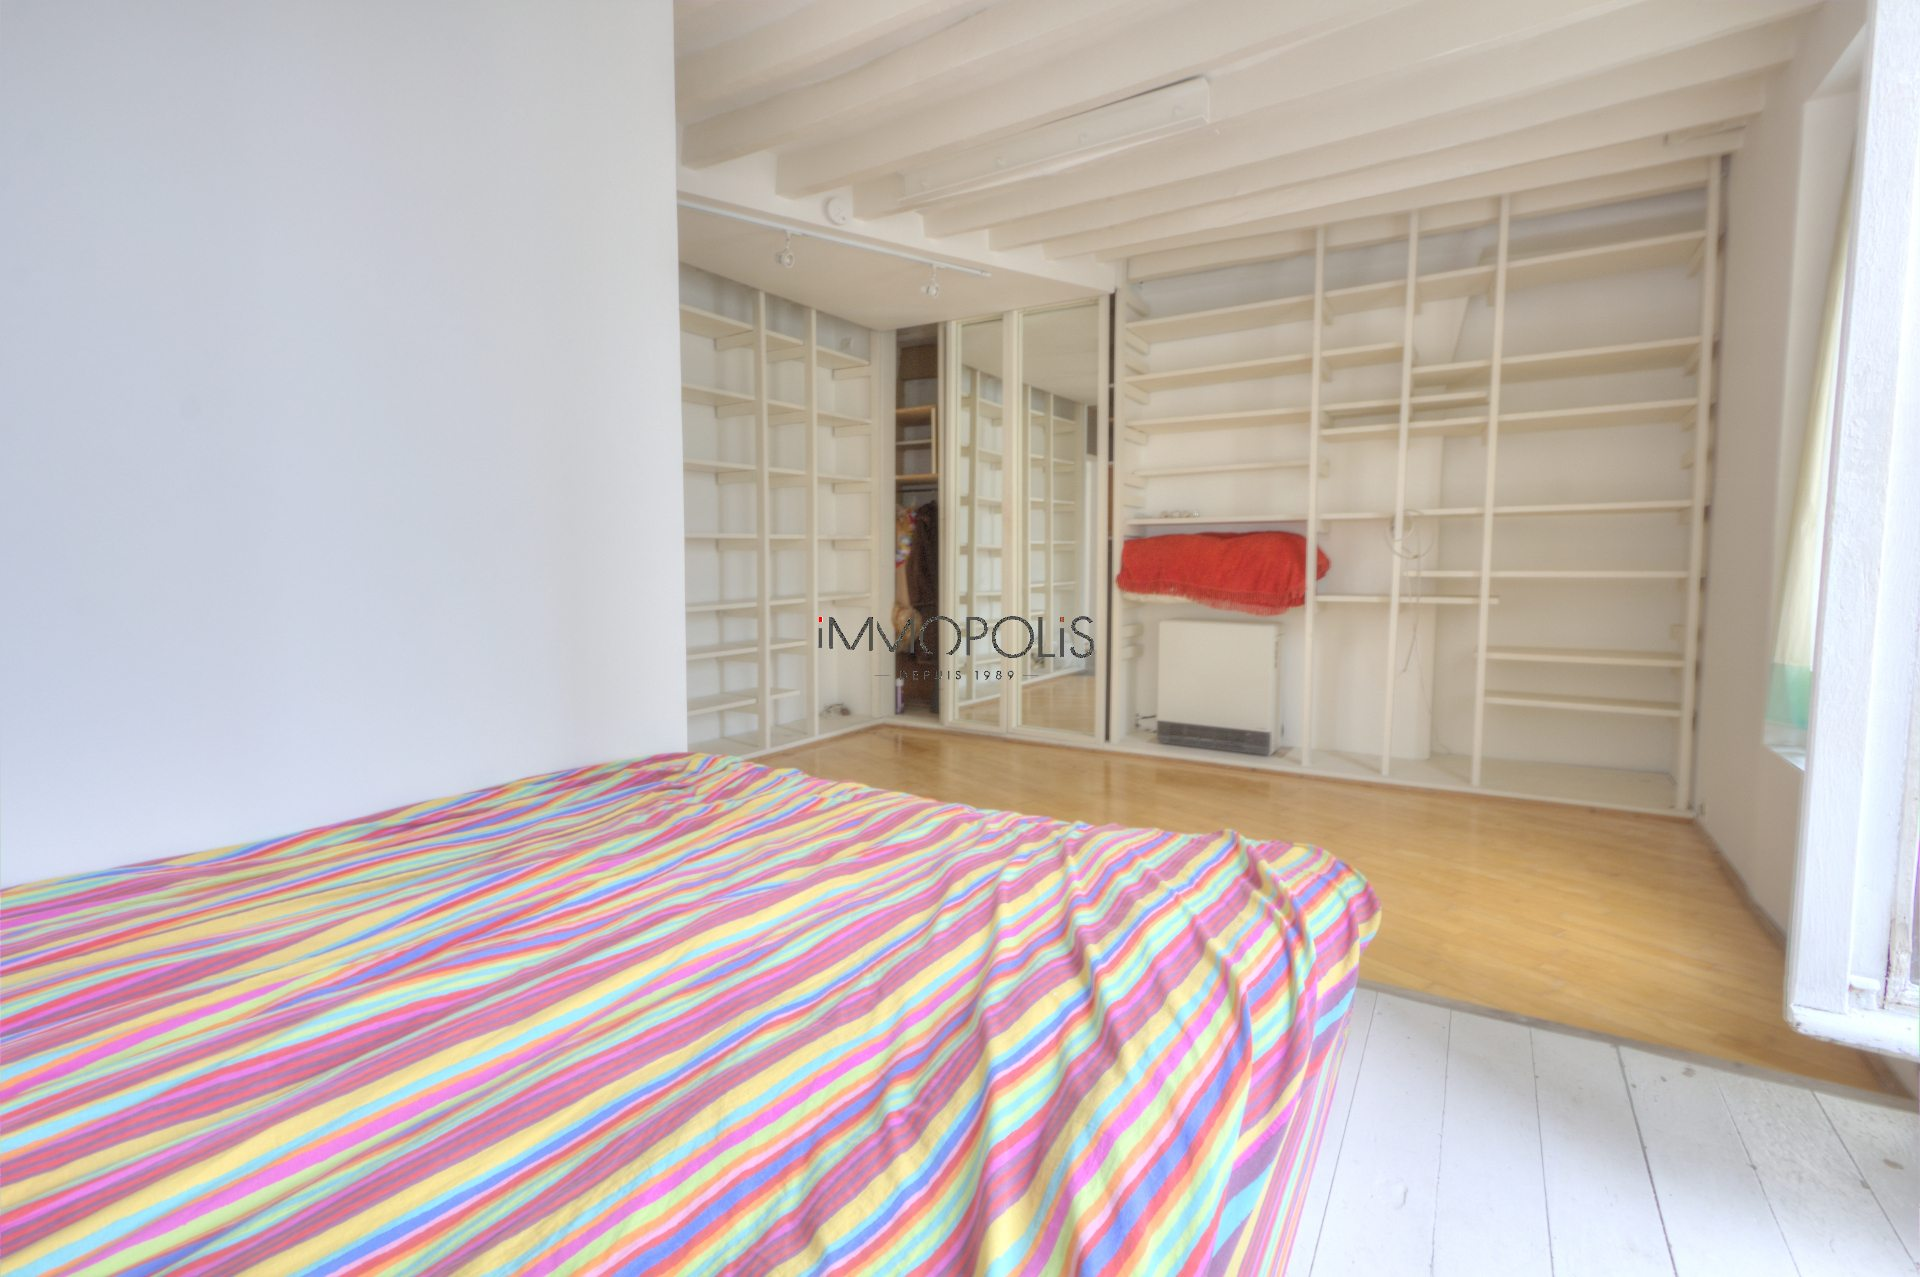 In the heart of the Abbesses, rue Berthe, beautiful 1 bedroom apartment with a perfect plan, in good condition, crossing onto a quiet street and open courtyard! 5